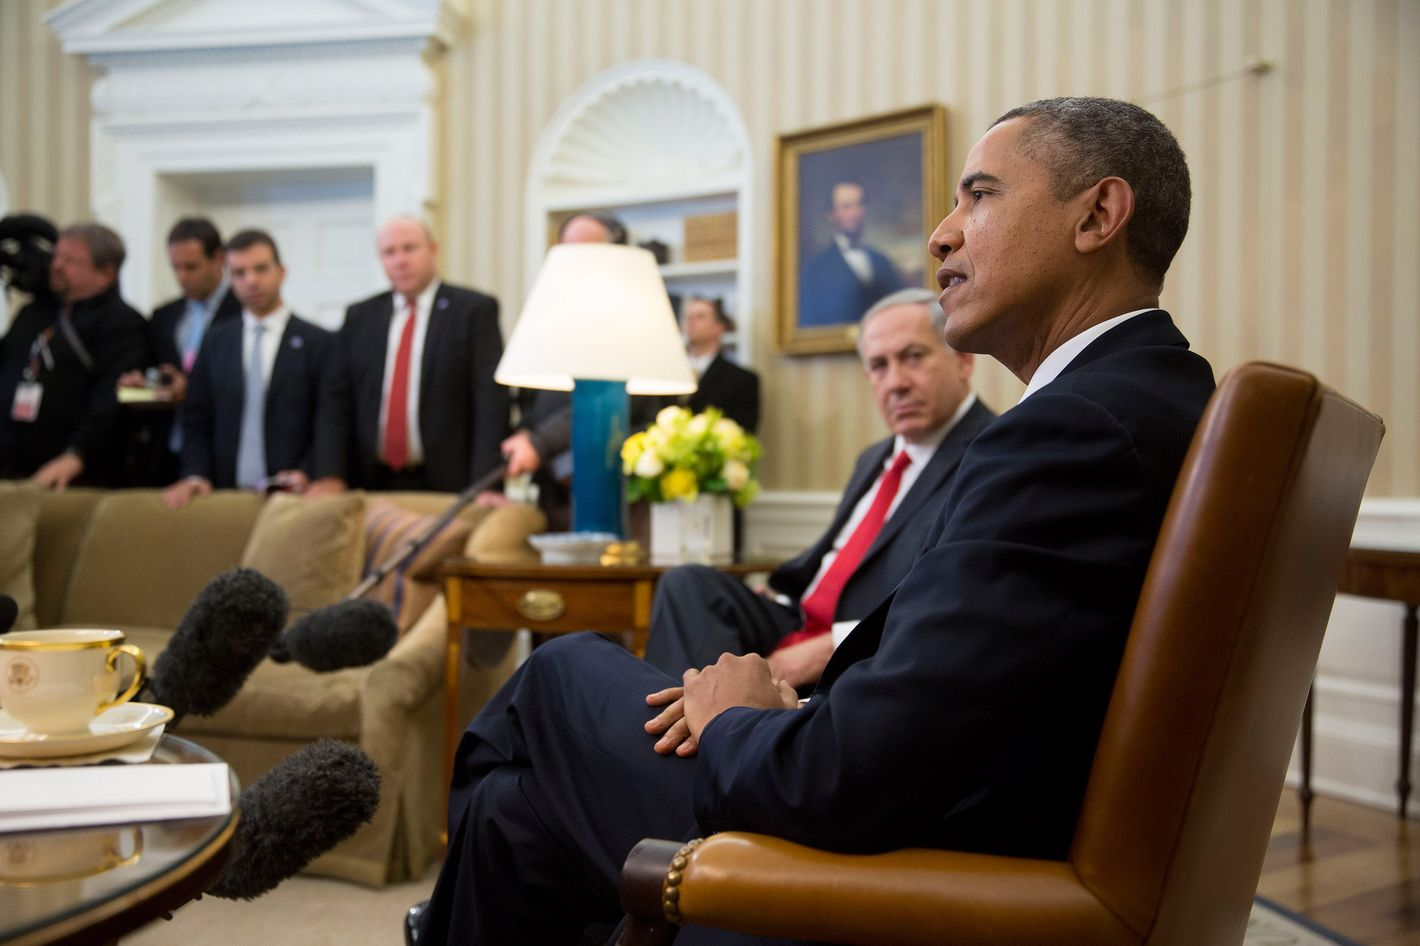 """Israel Prime Minister Benjamin Netanyahu (L) sits with U.S. President Barack Obama during a meeting in the Oval Office of the White House March 3, 2014 in Washington, D.C. Obama urged Netanyahu to """"seize the moment"""" to make peace, saying time is running out of time to negotiate an Israeli-Palestinian agreement."""